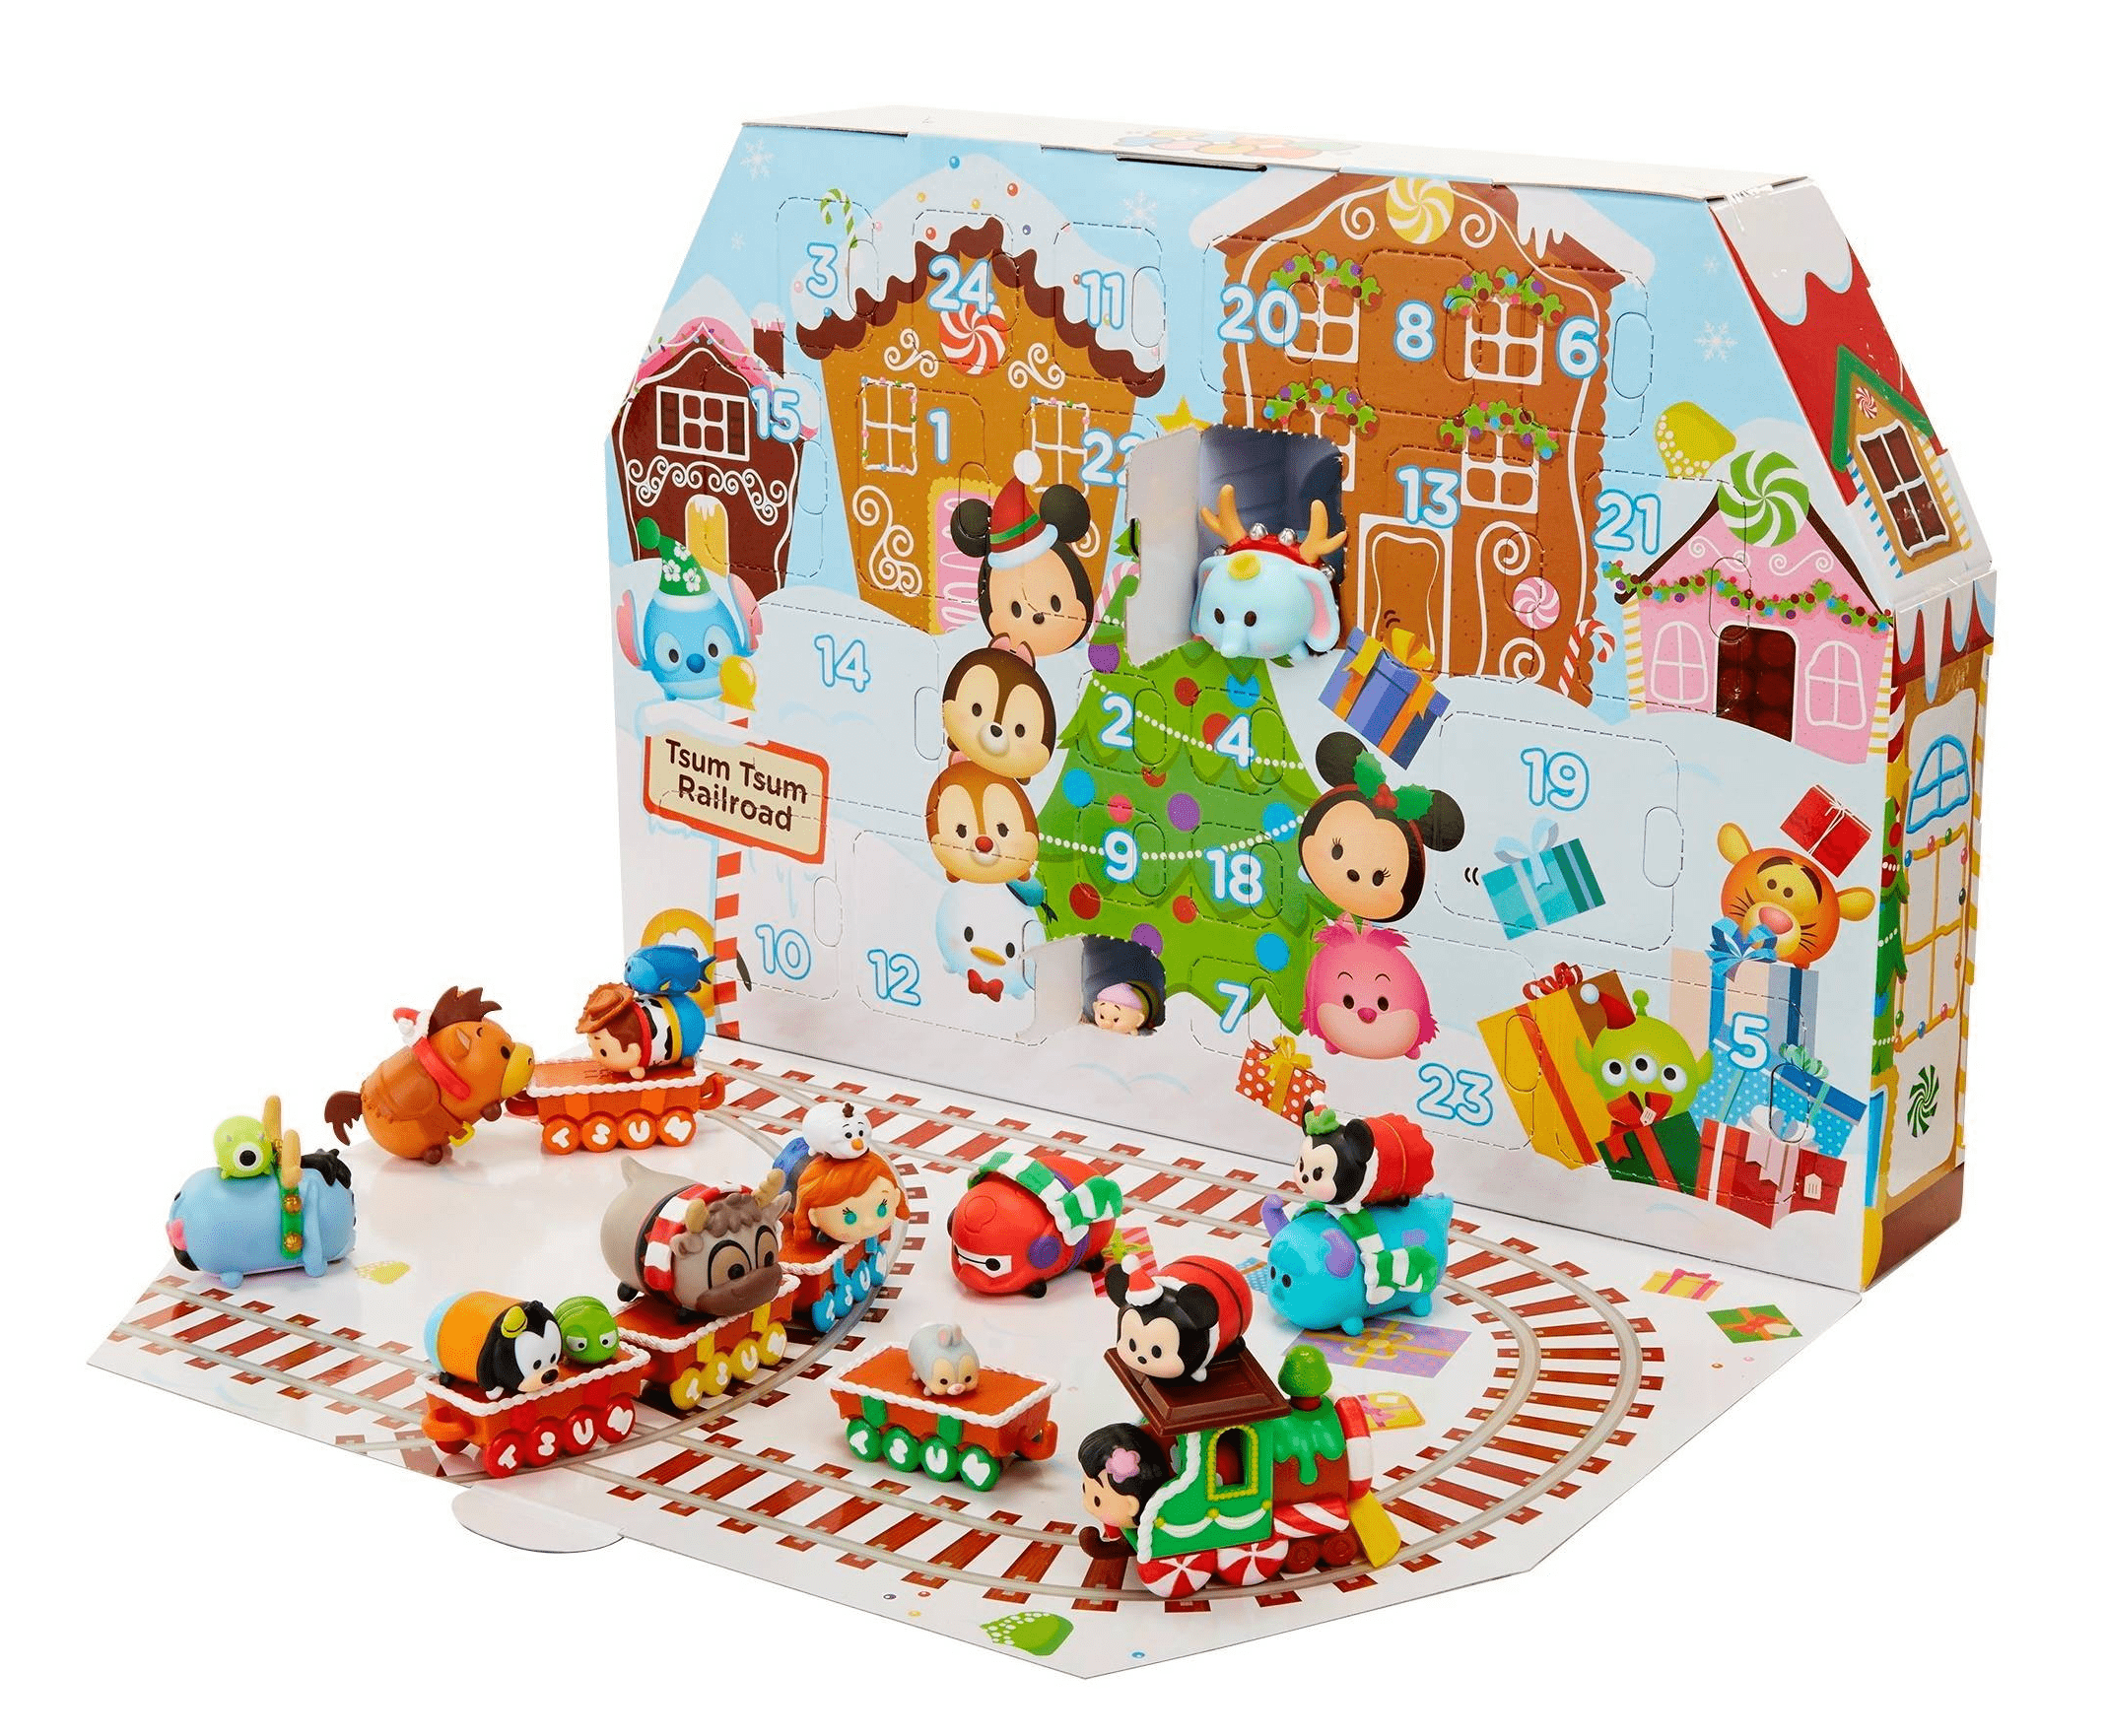 2017 disney tsum tsum target exclusive advent calendar. Black Bedroom Furniture Sets. Home Design Ideas